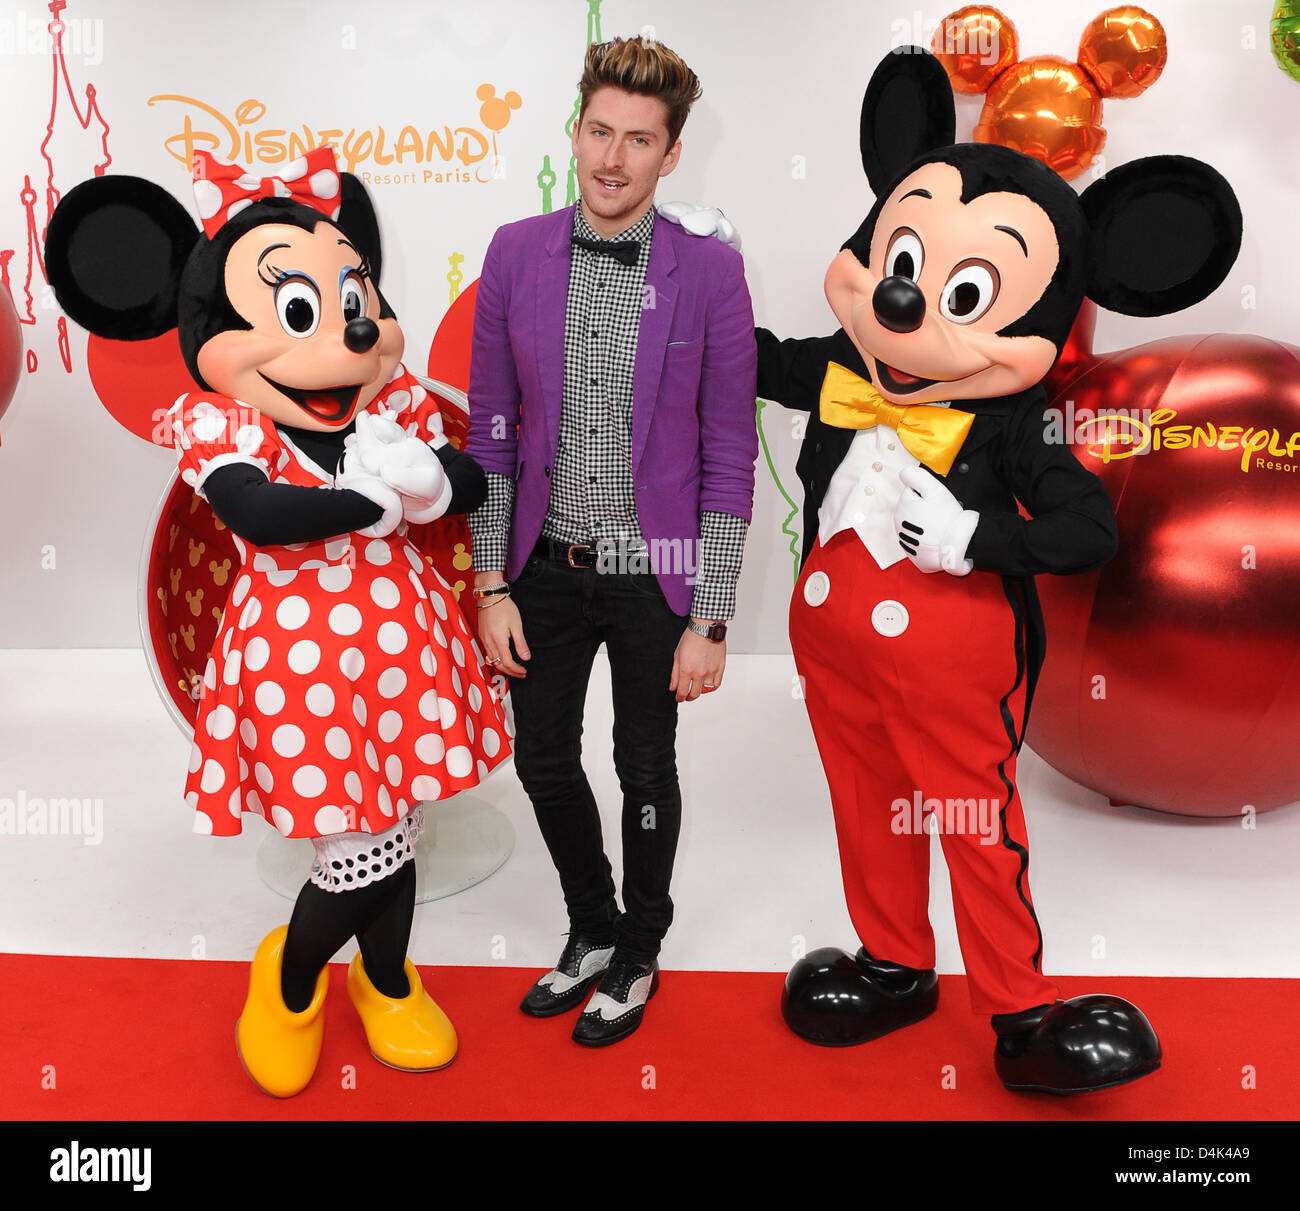 Designer Henry Holland arrives at the premiere of the new Disney show ?Mickey?s Magical Party? at Disneyland Resort Stock Photo